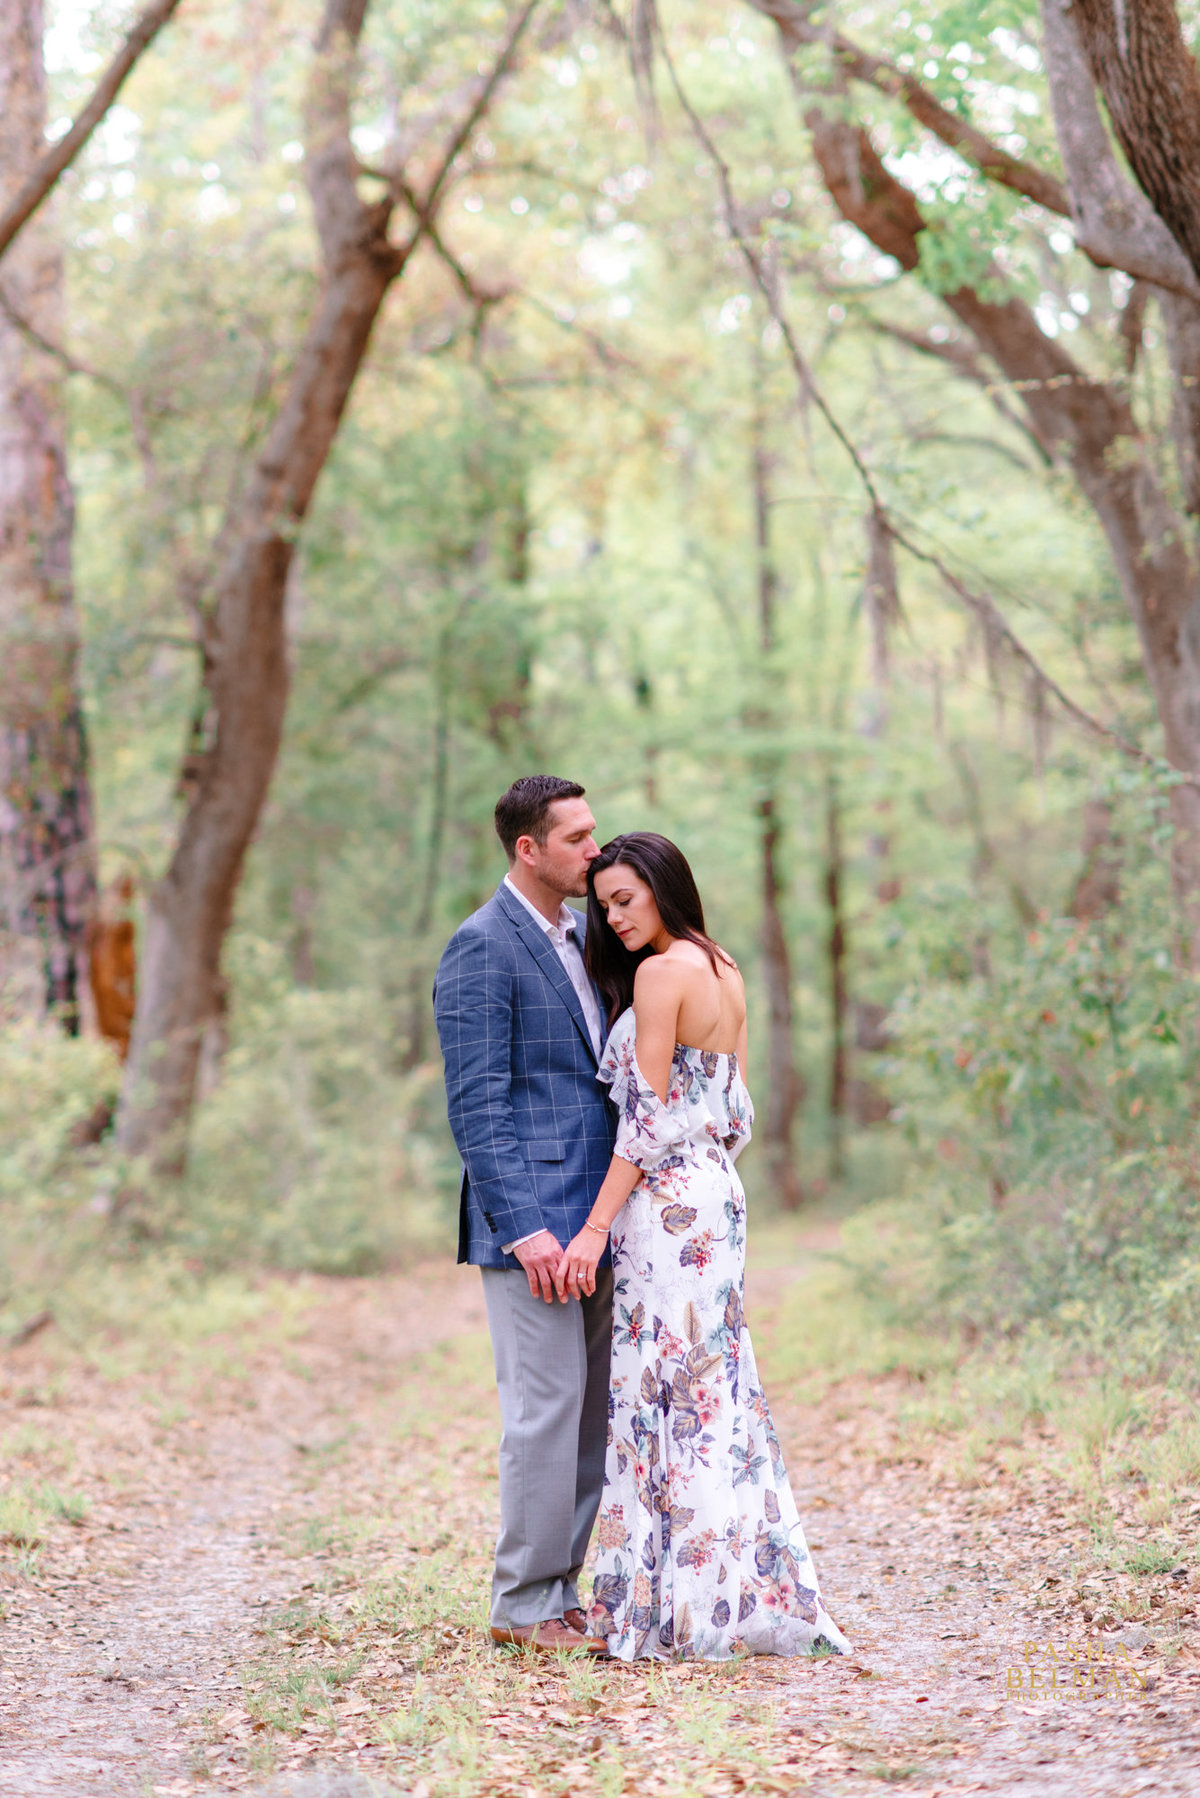 Charleston Engagement Photography | Engagement Pictures in Charleston | Engagement Portraits by Pasha Belman Photographer-23